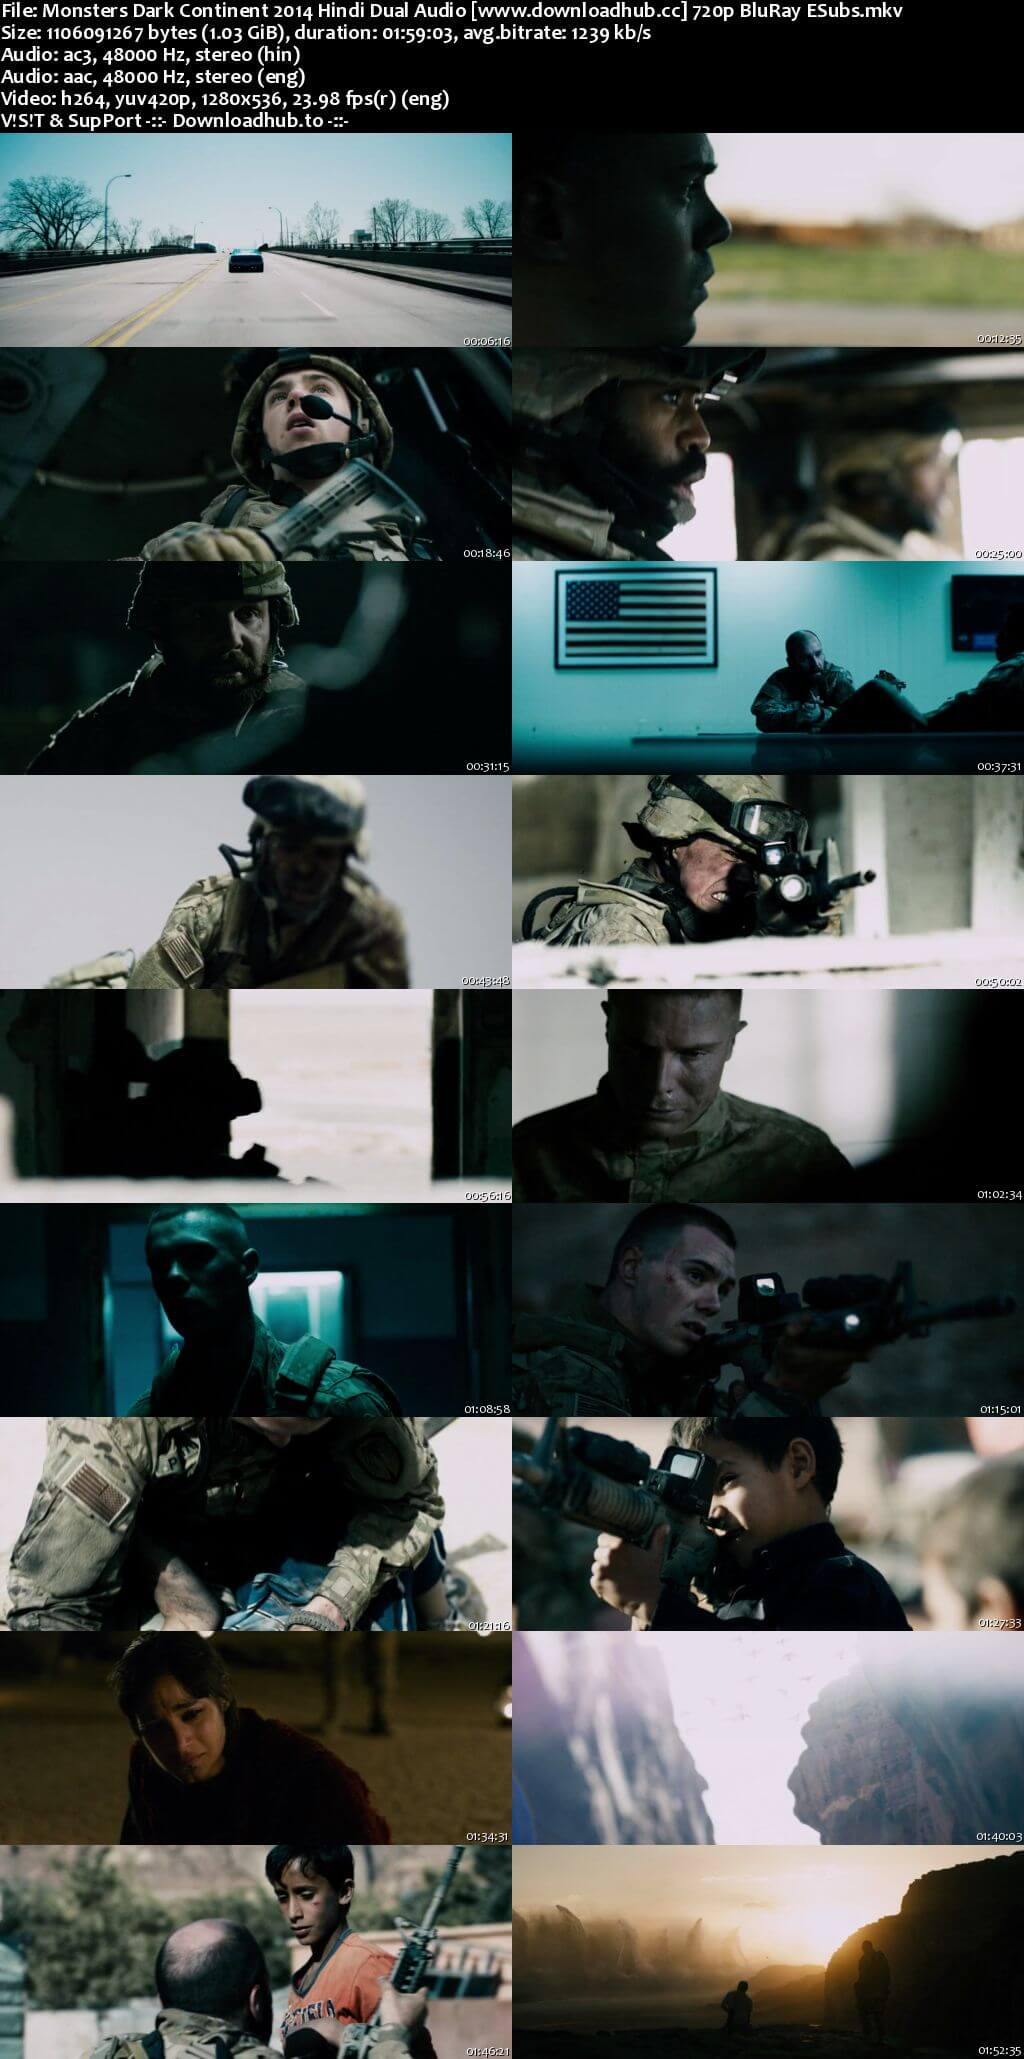 Monsters Dark Continent 2014 Hindi Dual Audio 720p BluRay ESubs